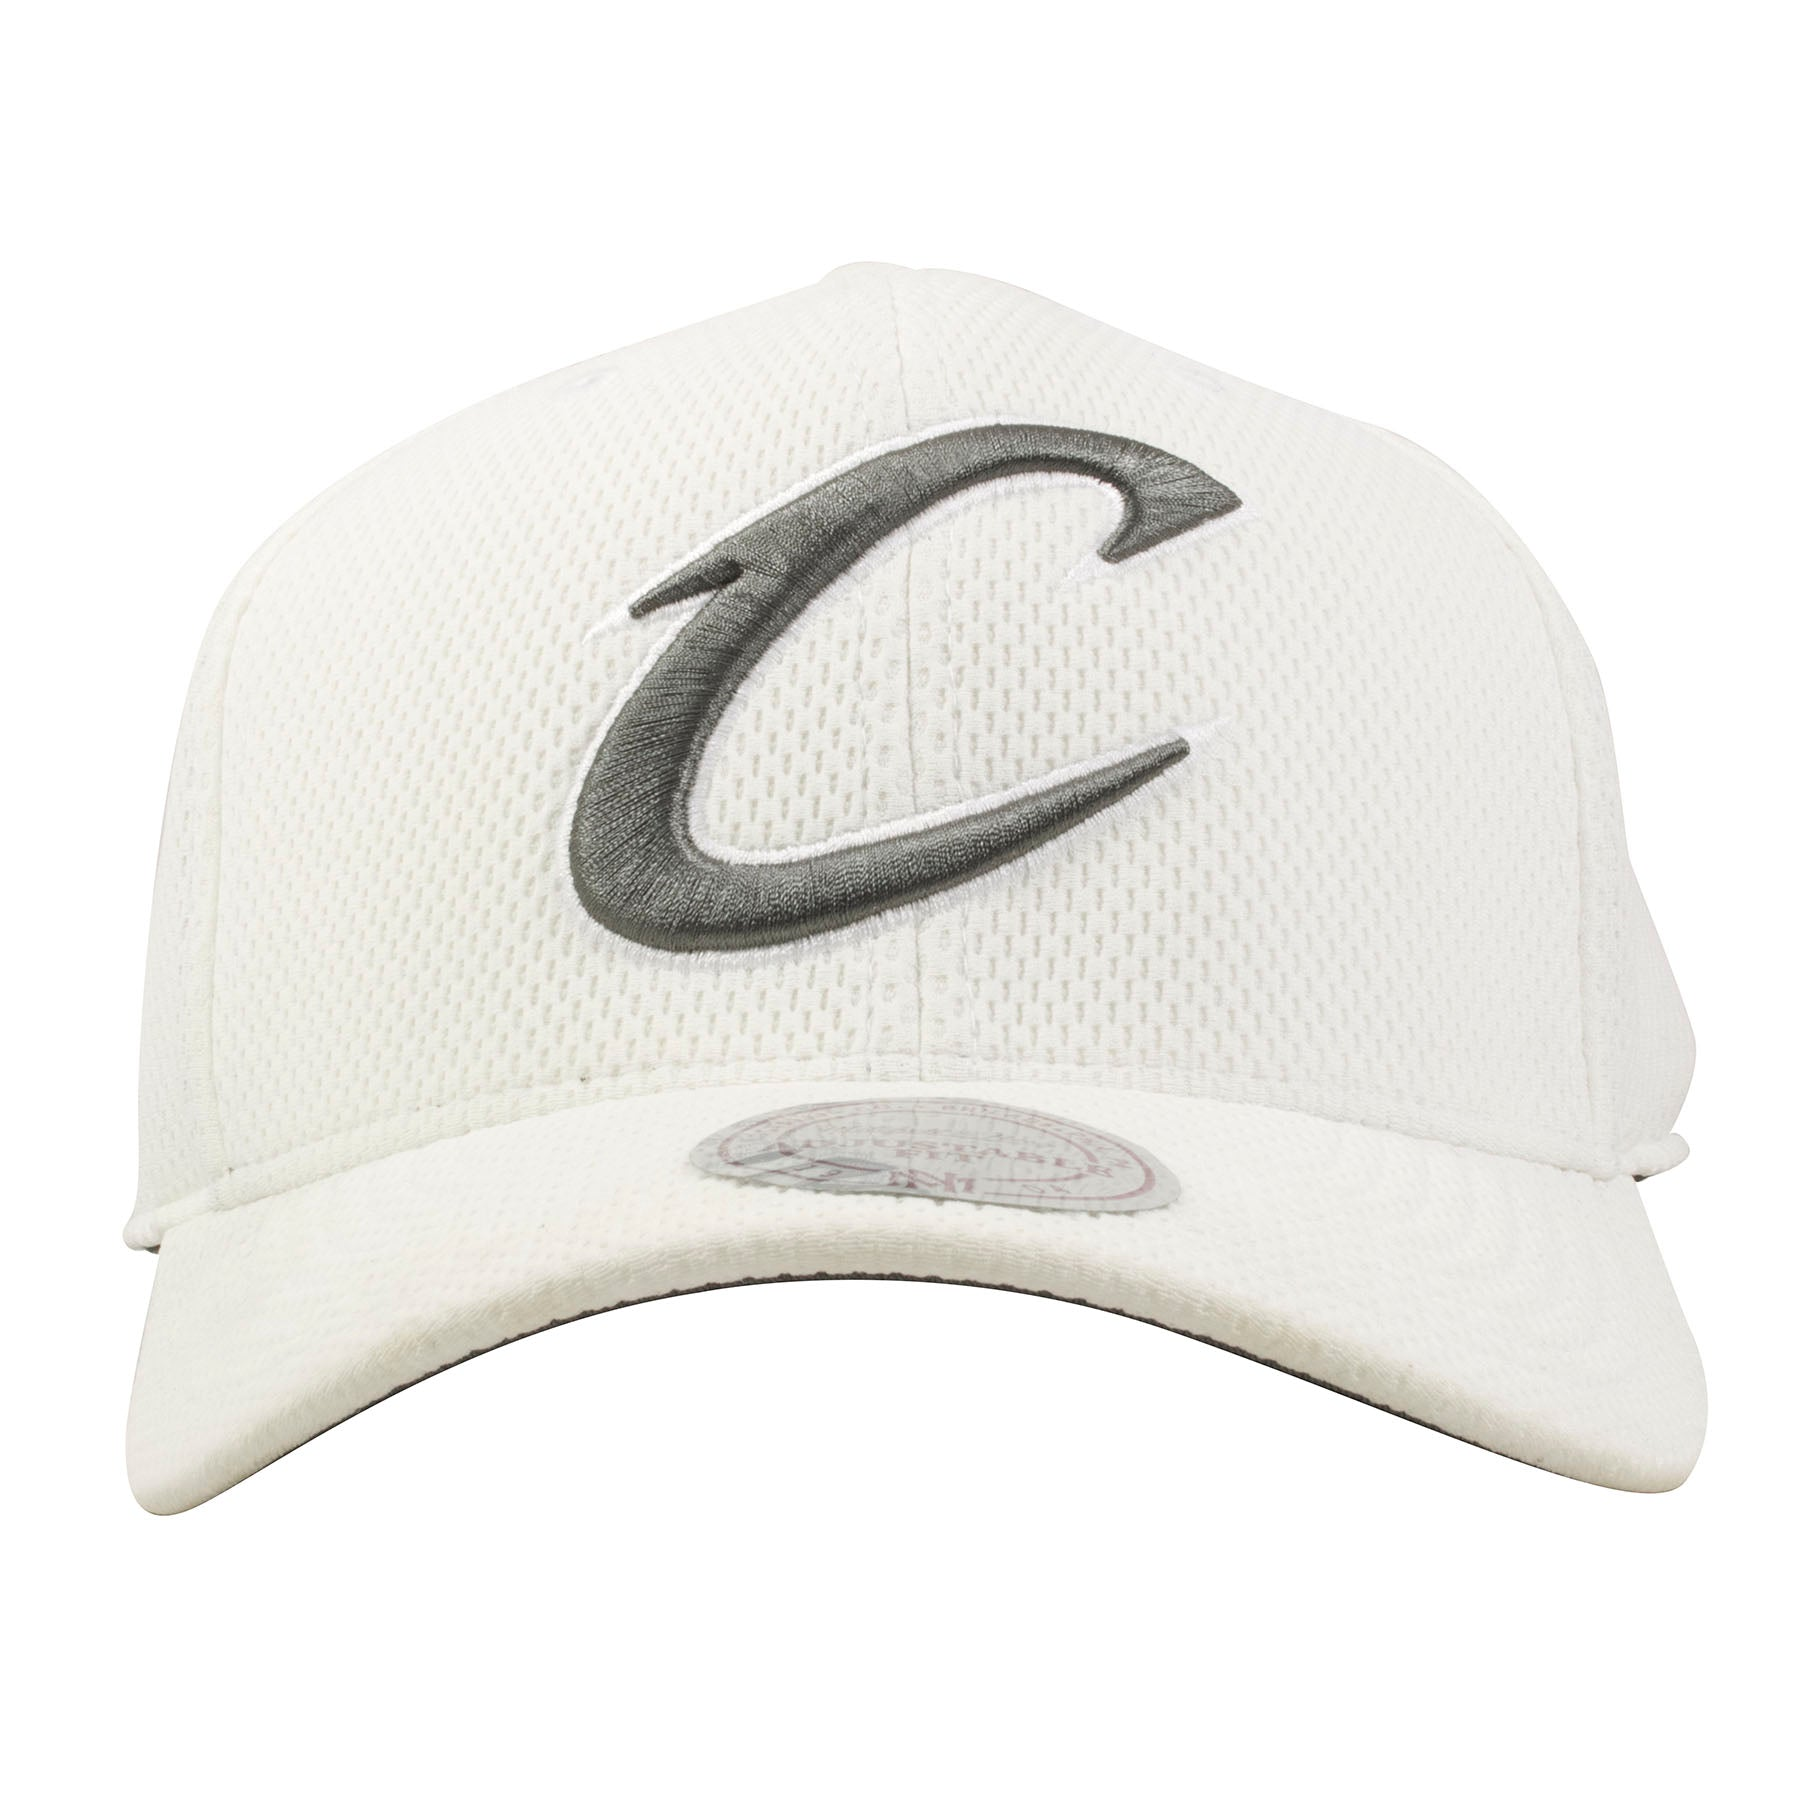 becbafba0a9 embroidered on the front of the cleveland cavaliers white hexagonal dad hat  is the cavaliers logo